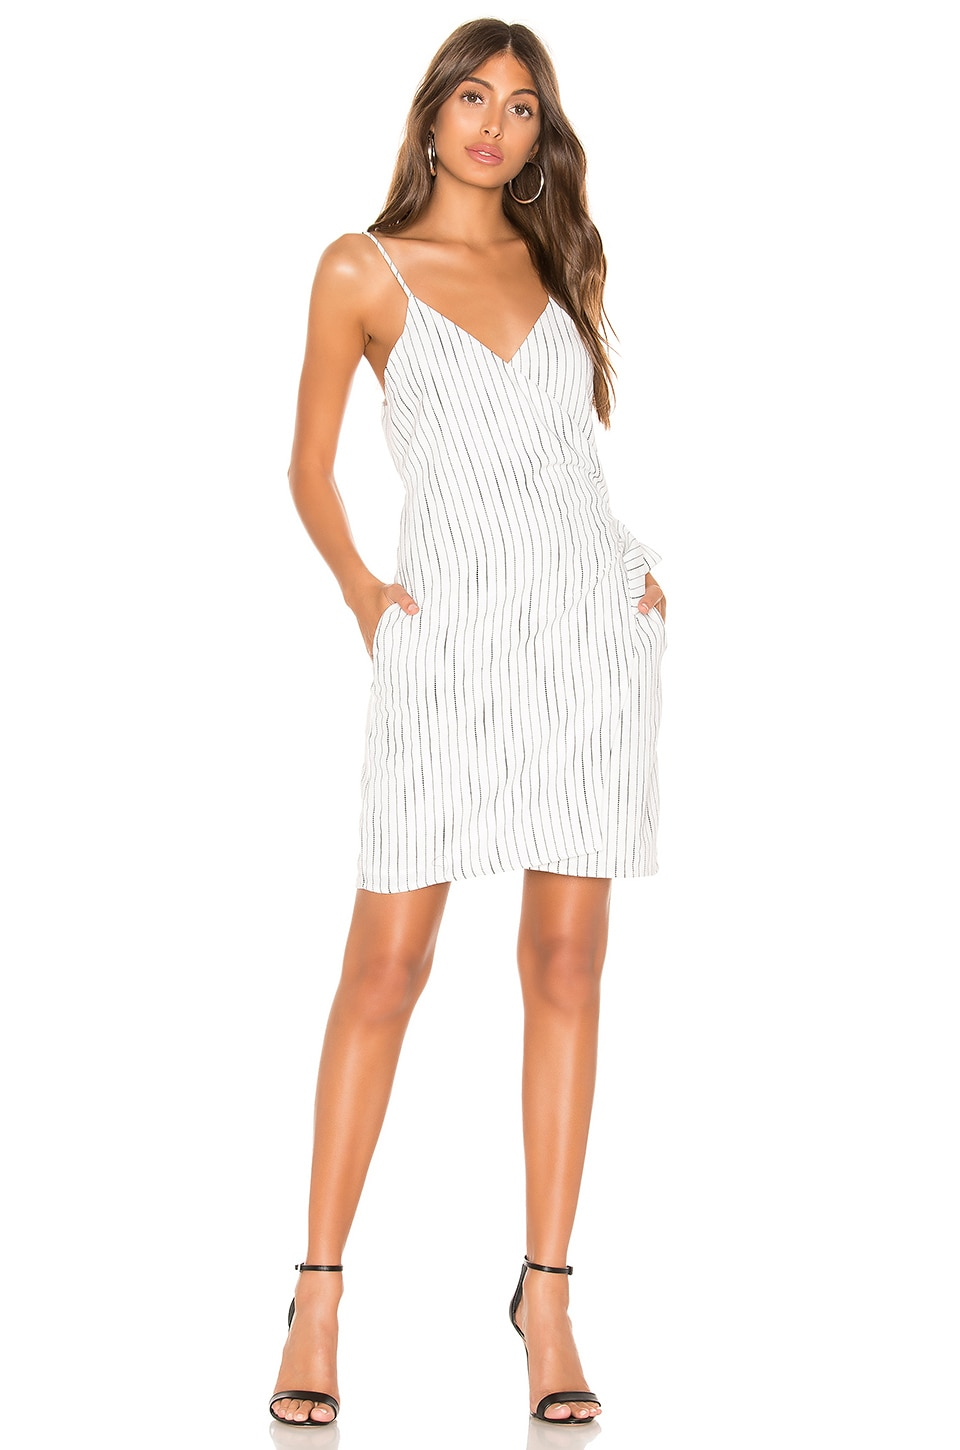 Line & Dot Lily Tied Dress in White & Black